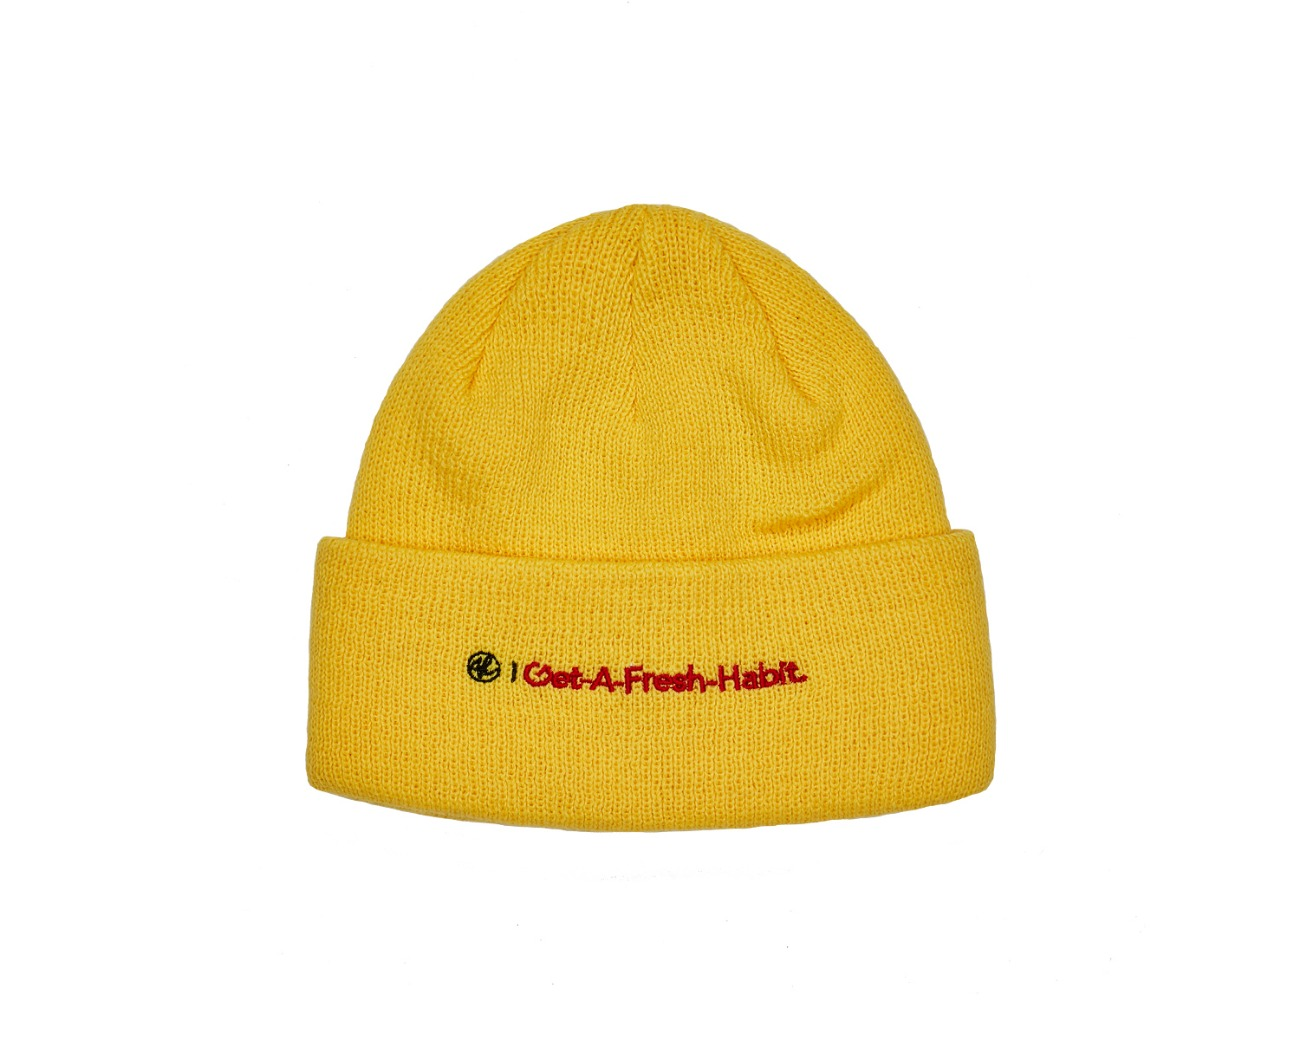 GAFH NEEDLEPOINT BEANIE YELLOW / GAFH